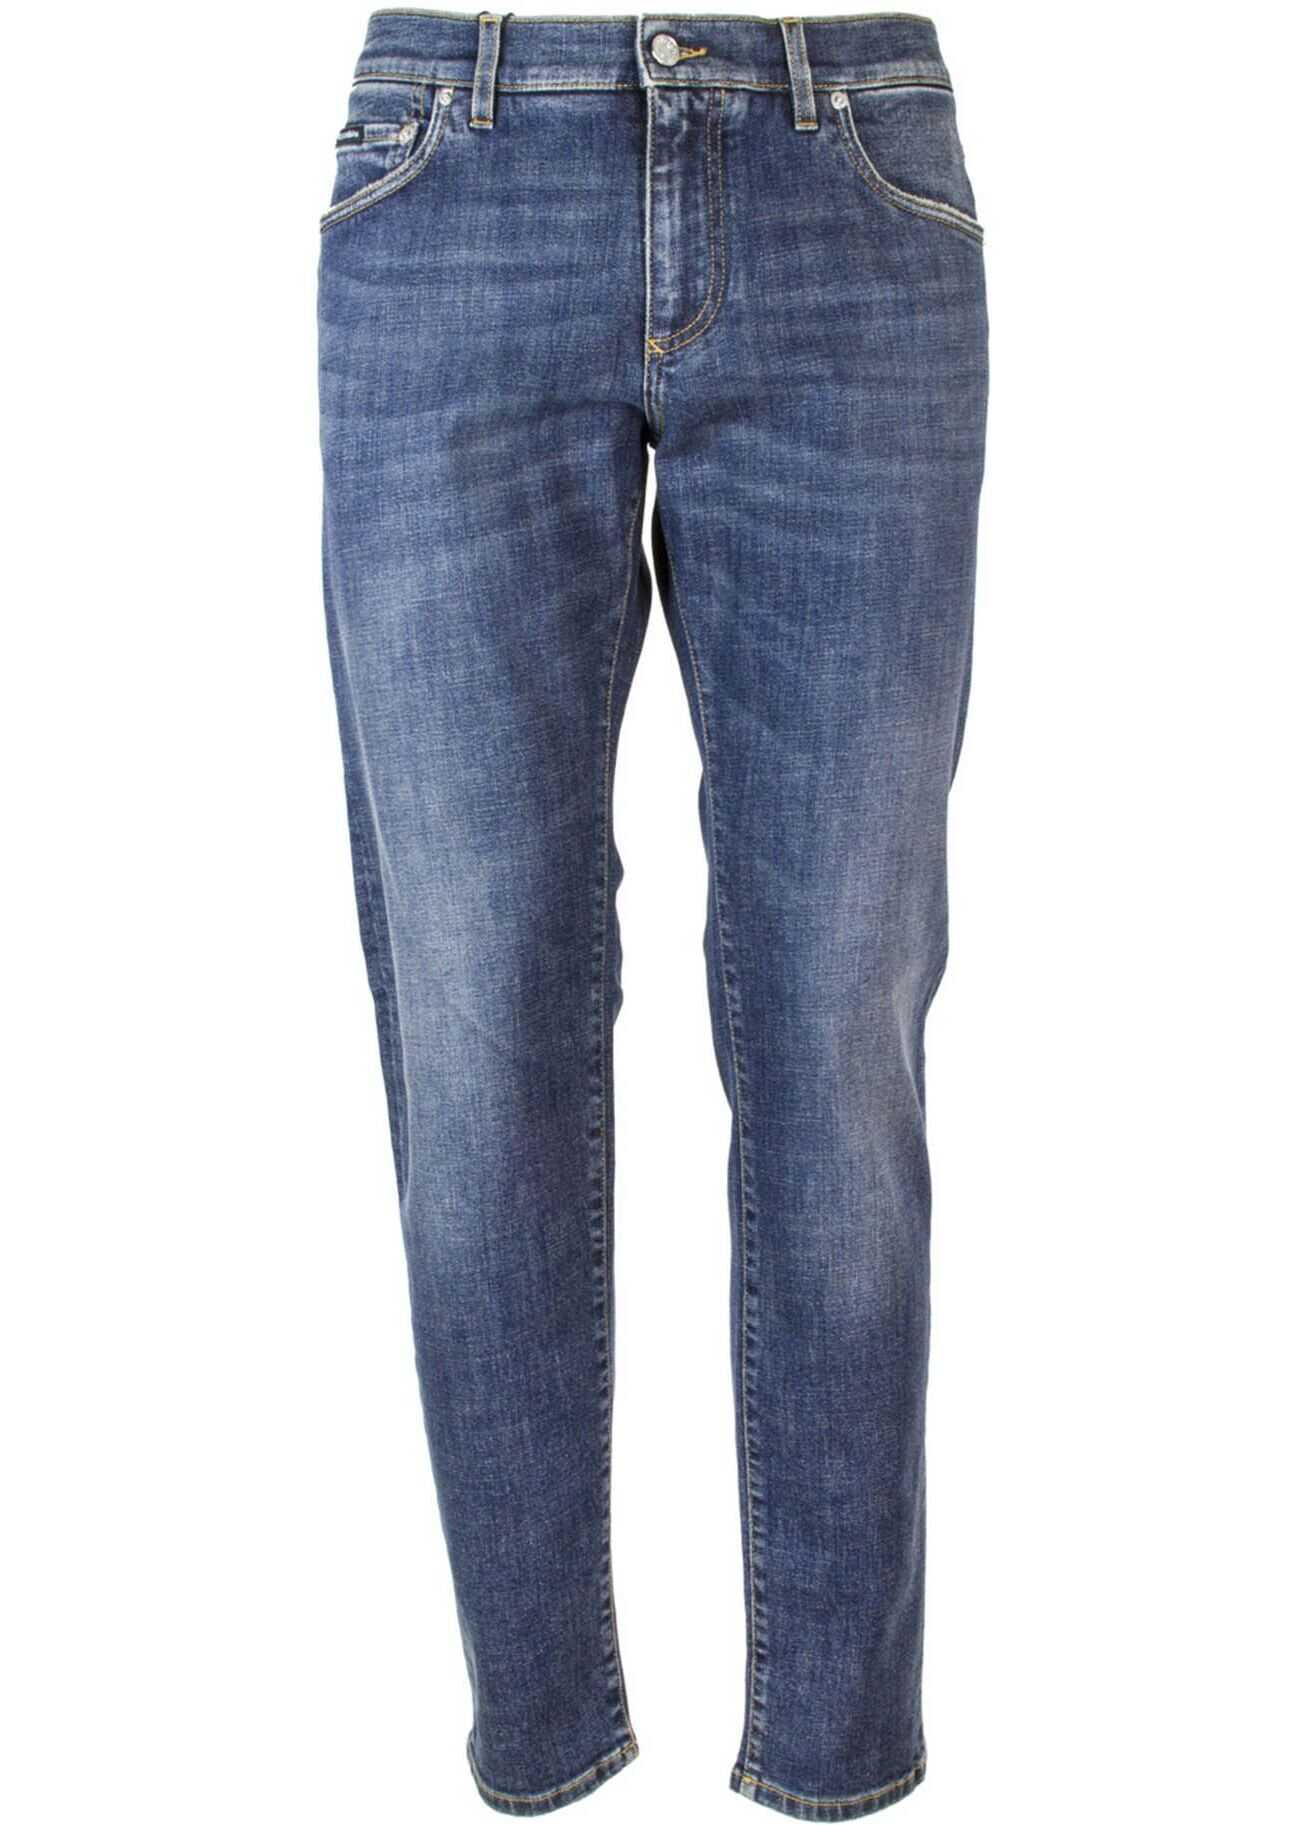 Dolce & Gabbana Slim Fit Jeans In Blue Blue imagine